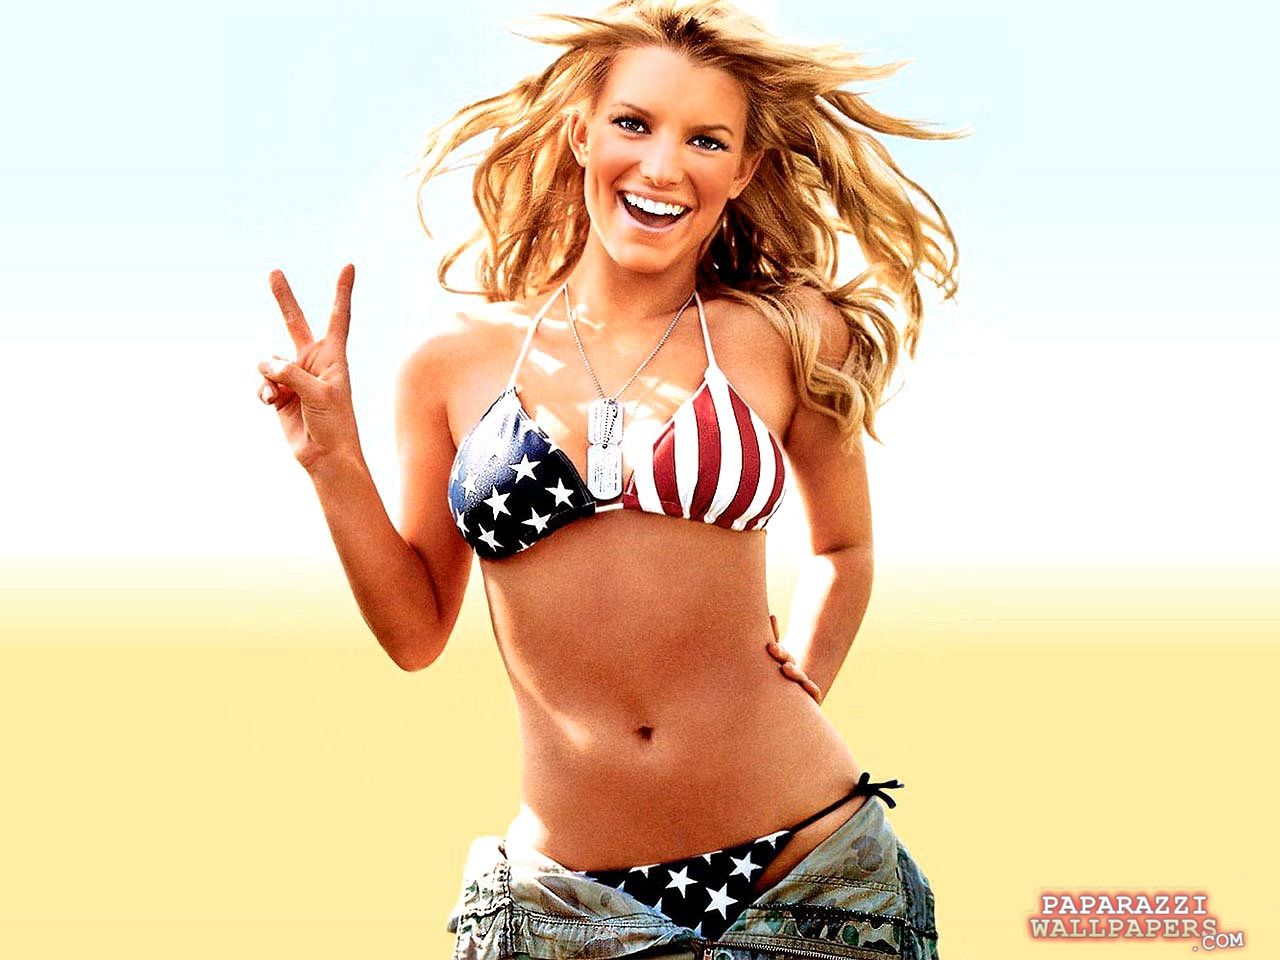 jessica simpson wallpapers 001